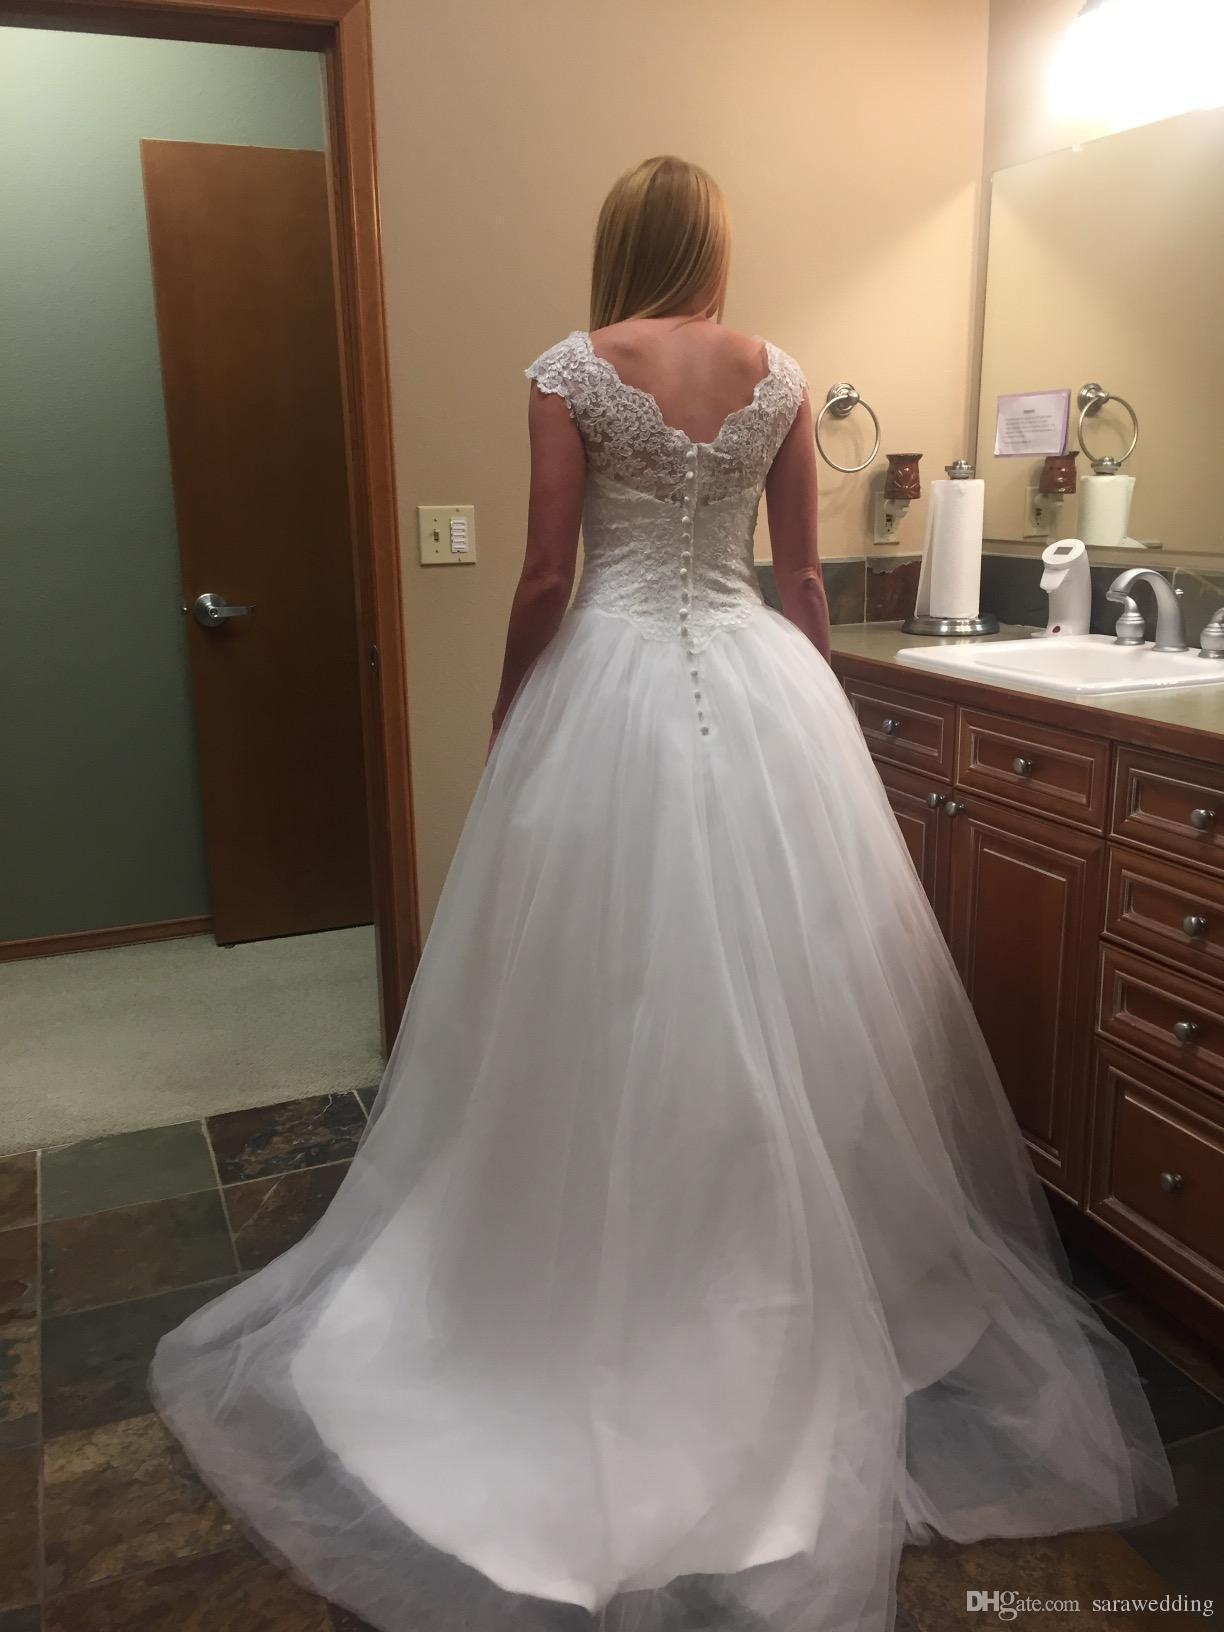 Lace Tulle Ball Gown Wedding Dresses with Appliques 2018 Boho Wedding Gowns Button Back Bridal Dresses